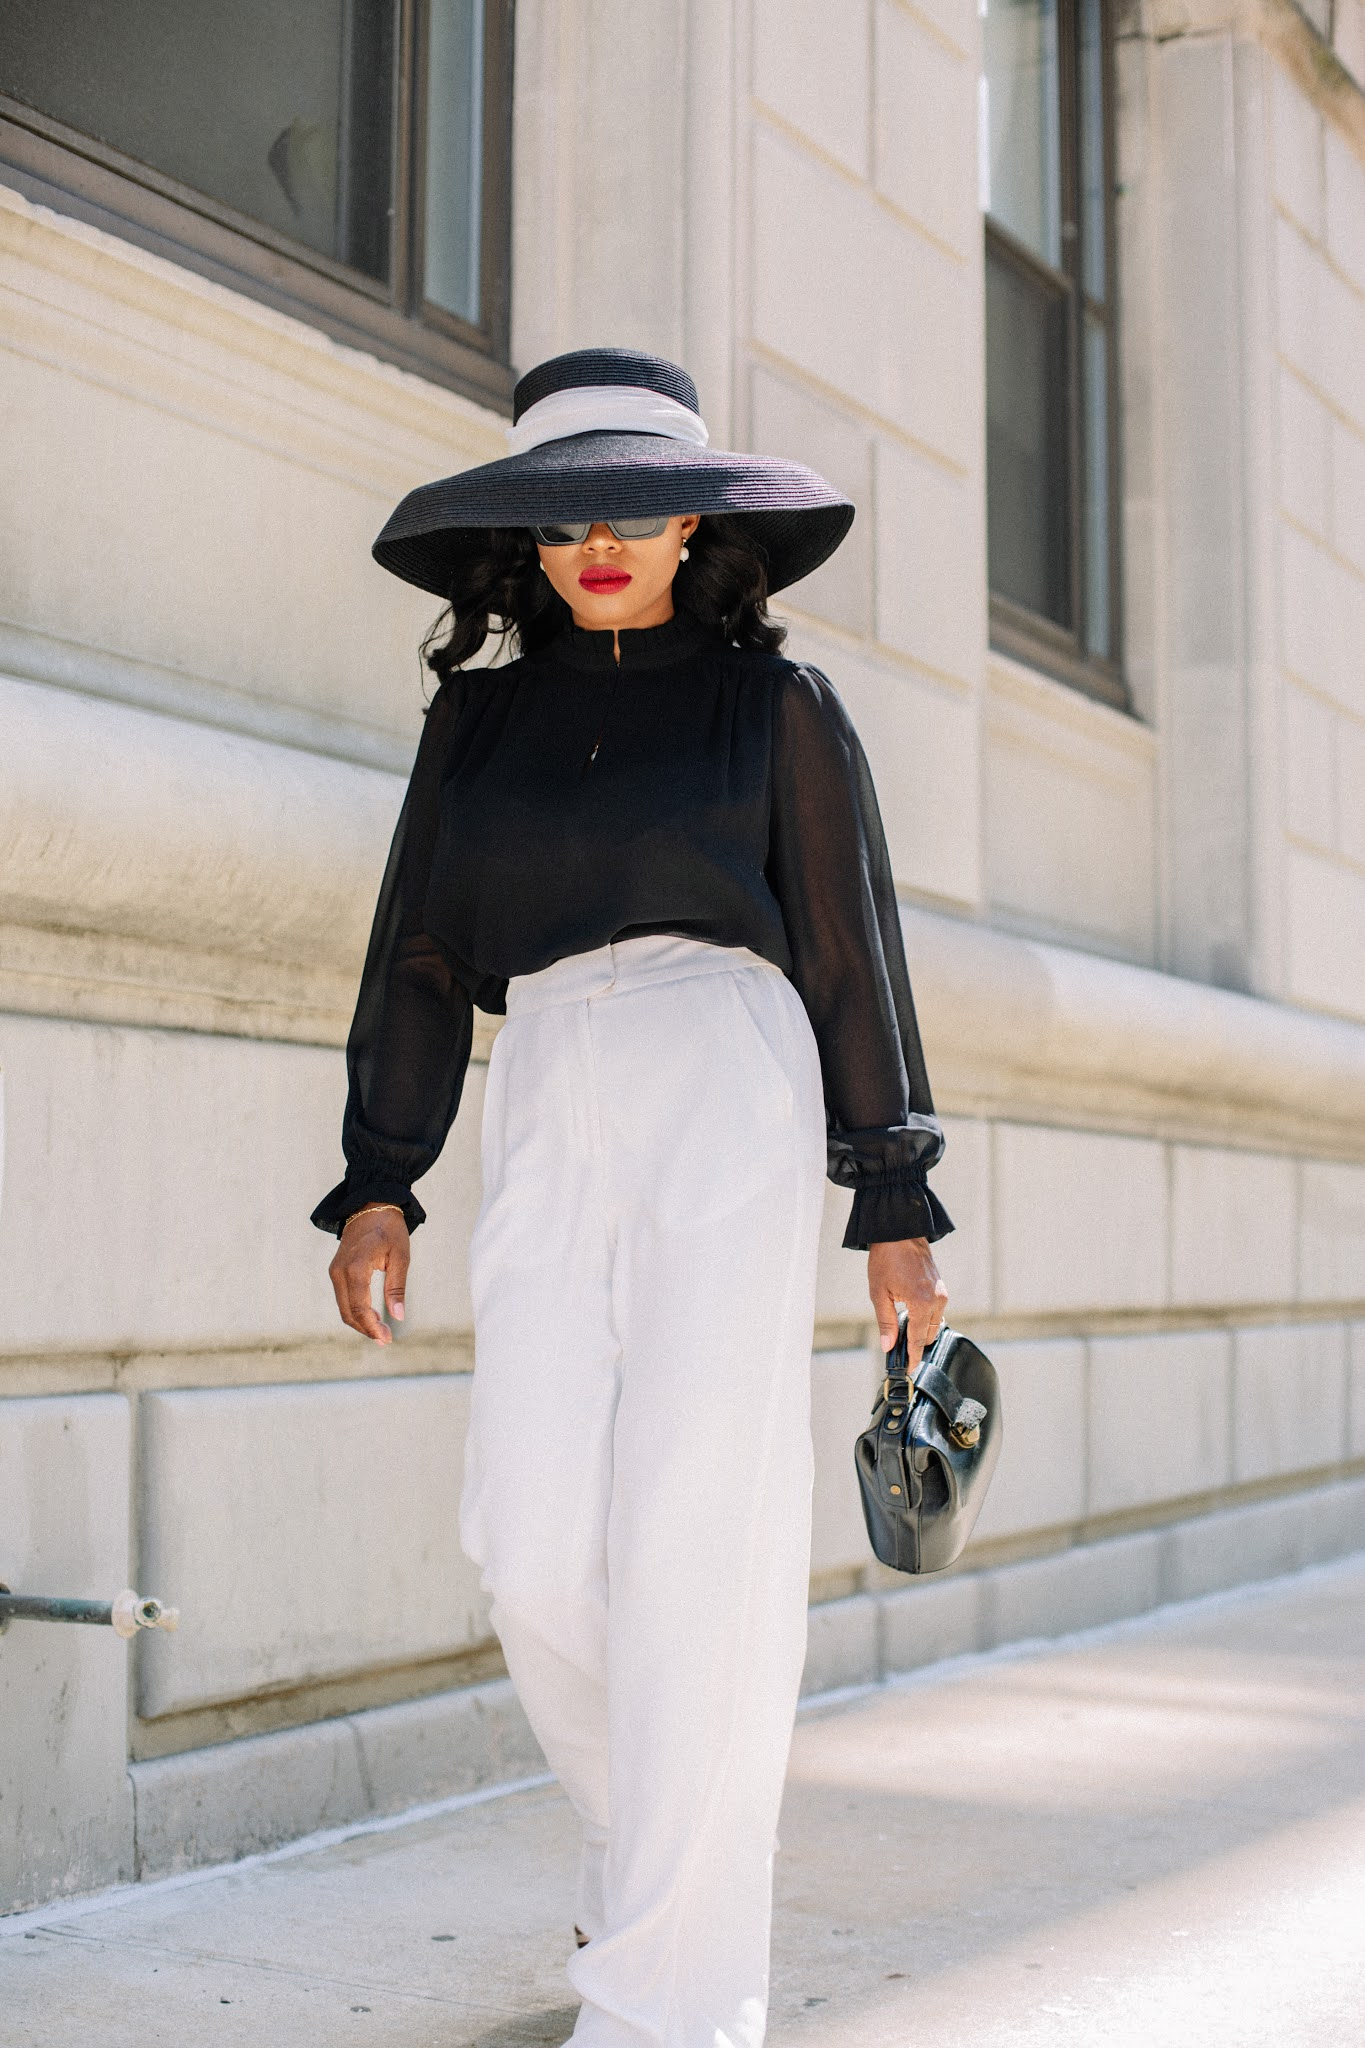 HOW TO ELEVATE YOUR STYLE With These 6 pieces